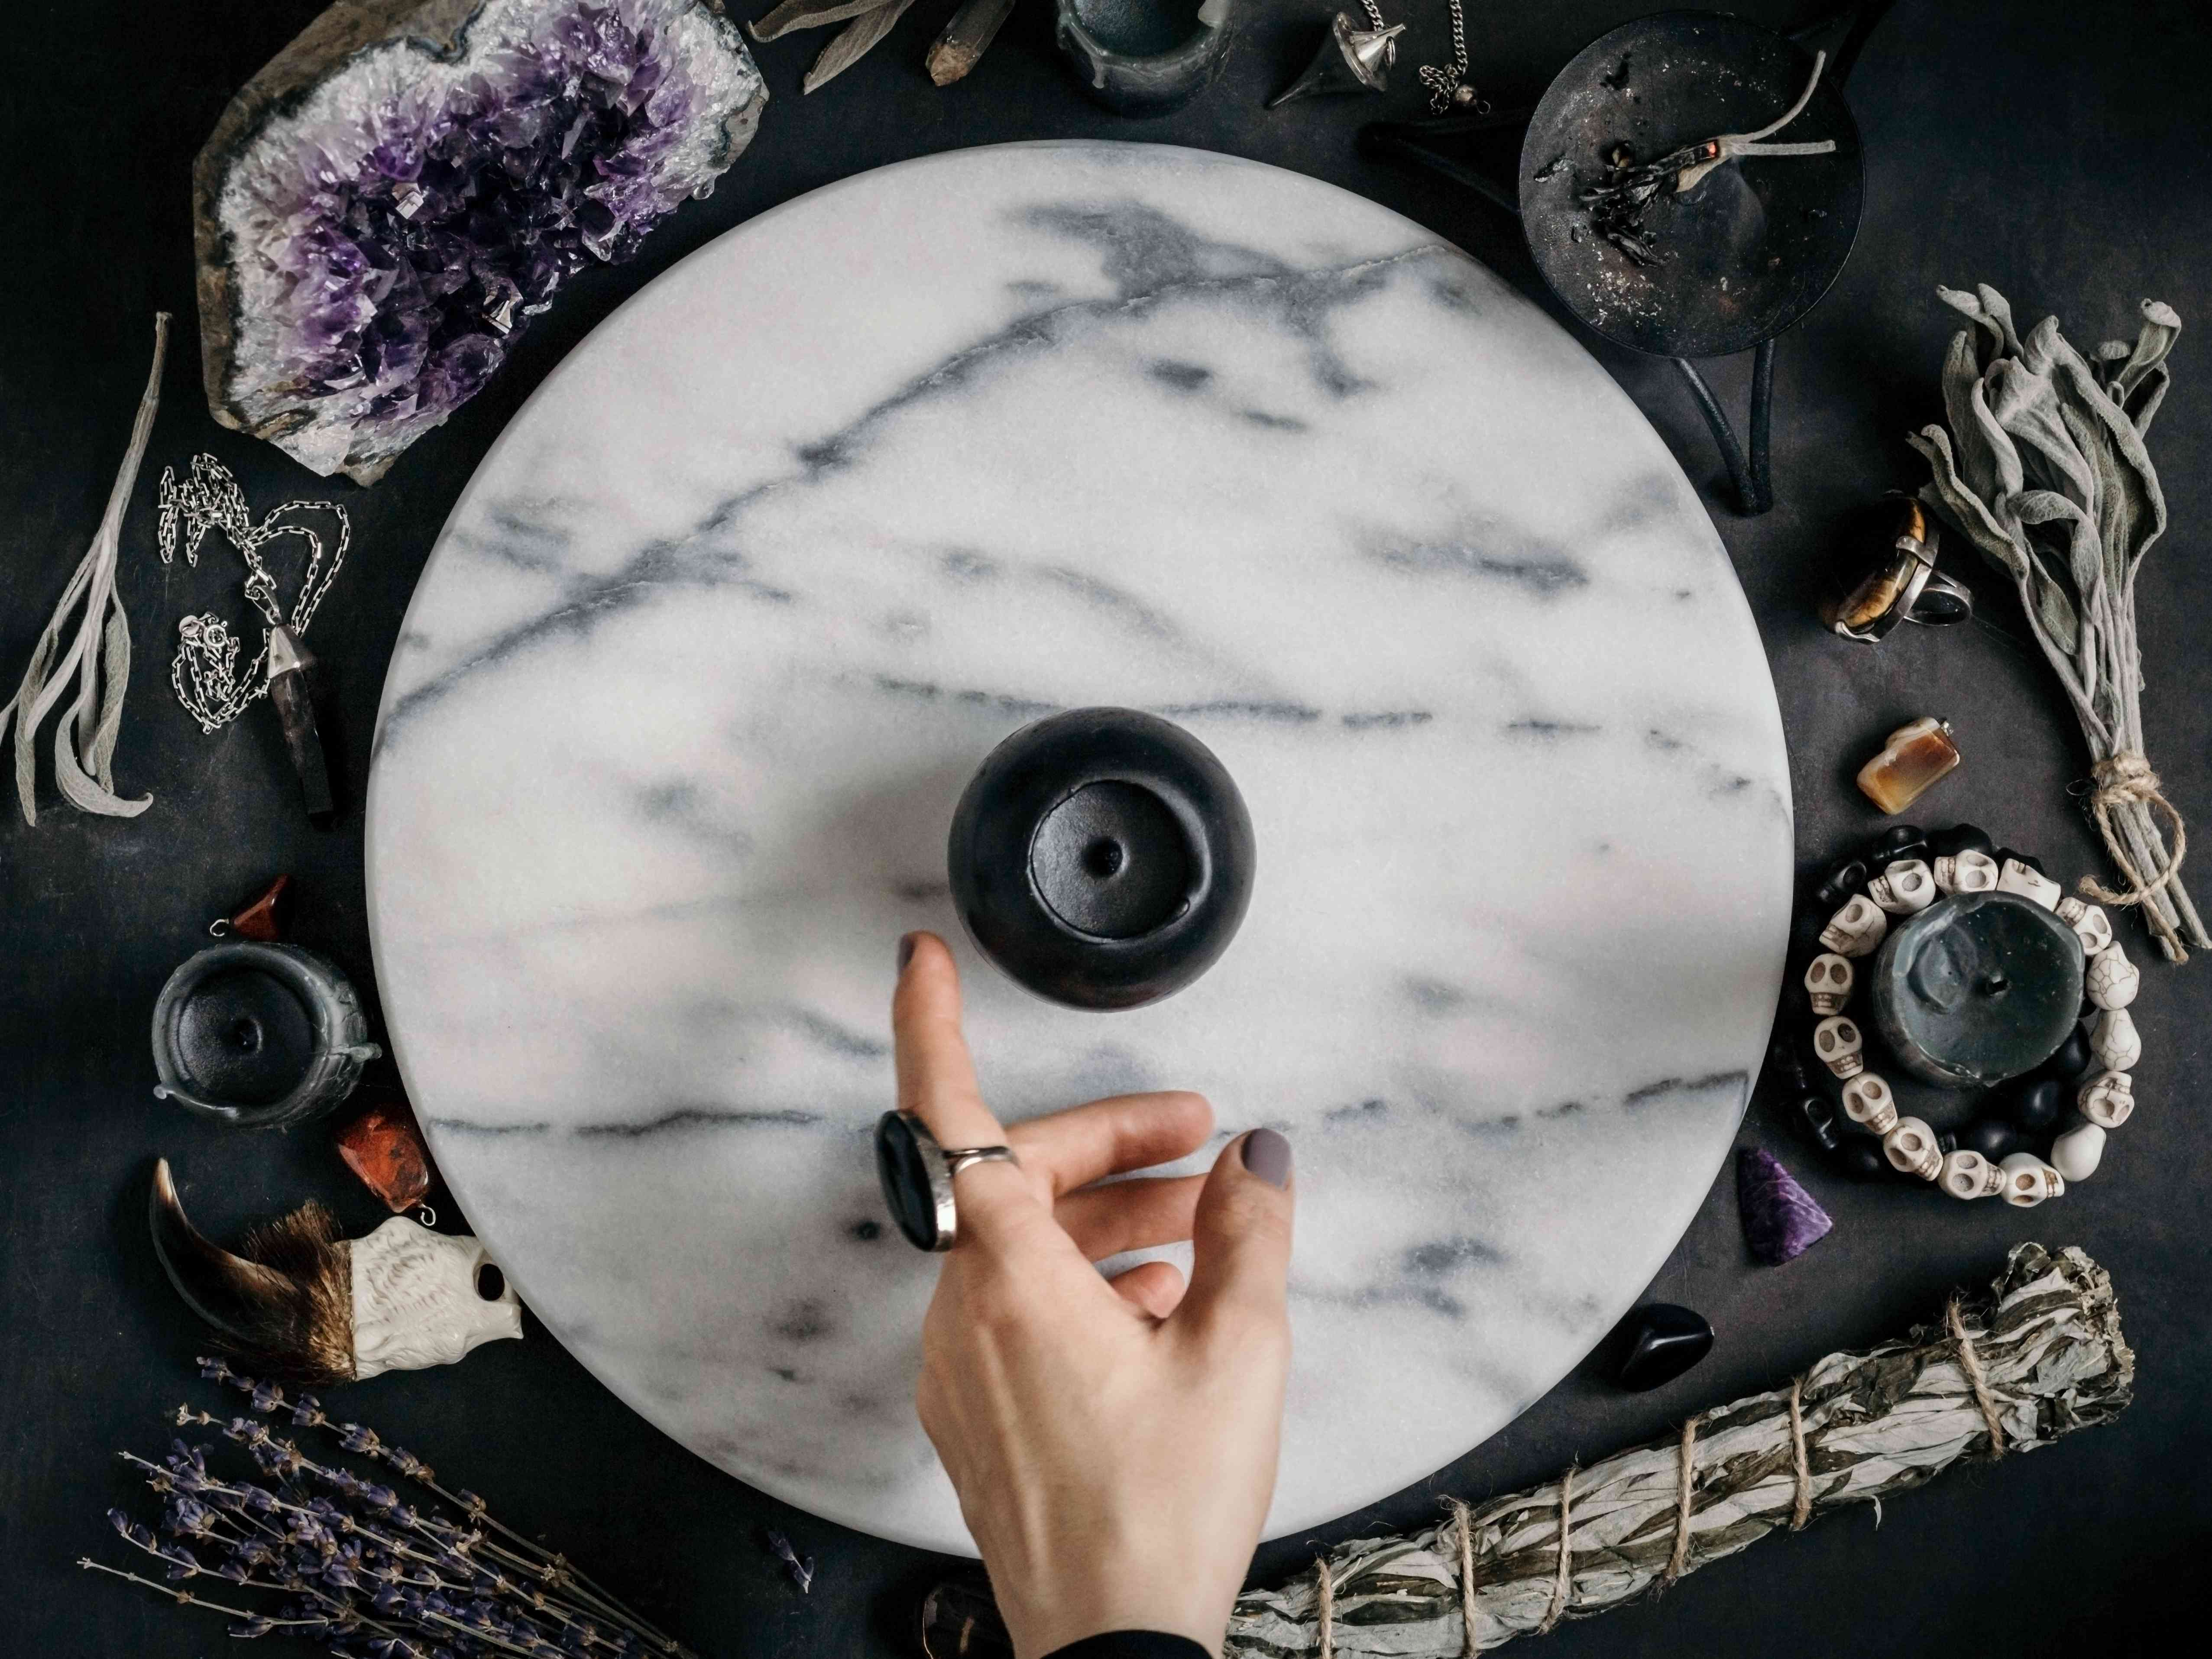 Witch's hand specifies on the black candle on a marble white round tray. The place for witchcraft with magic things around. View from above